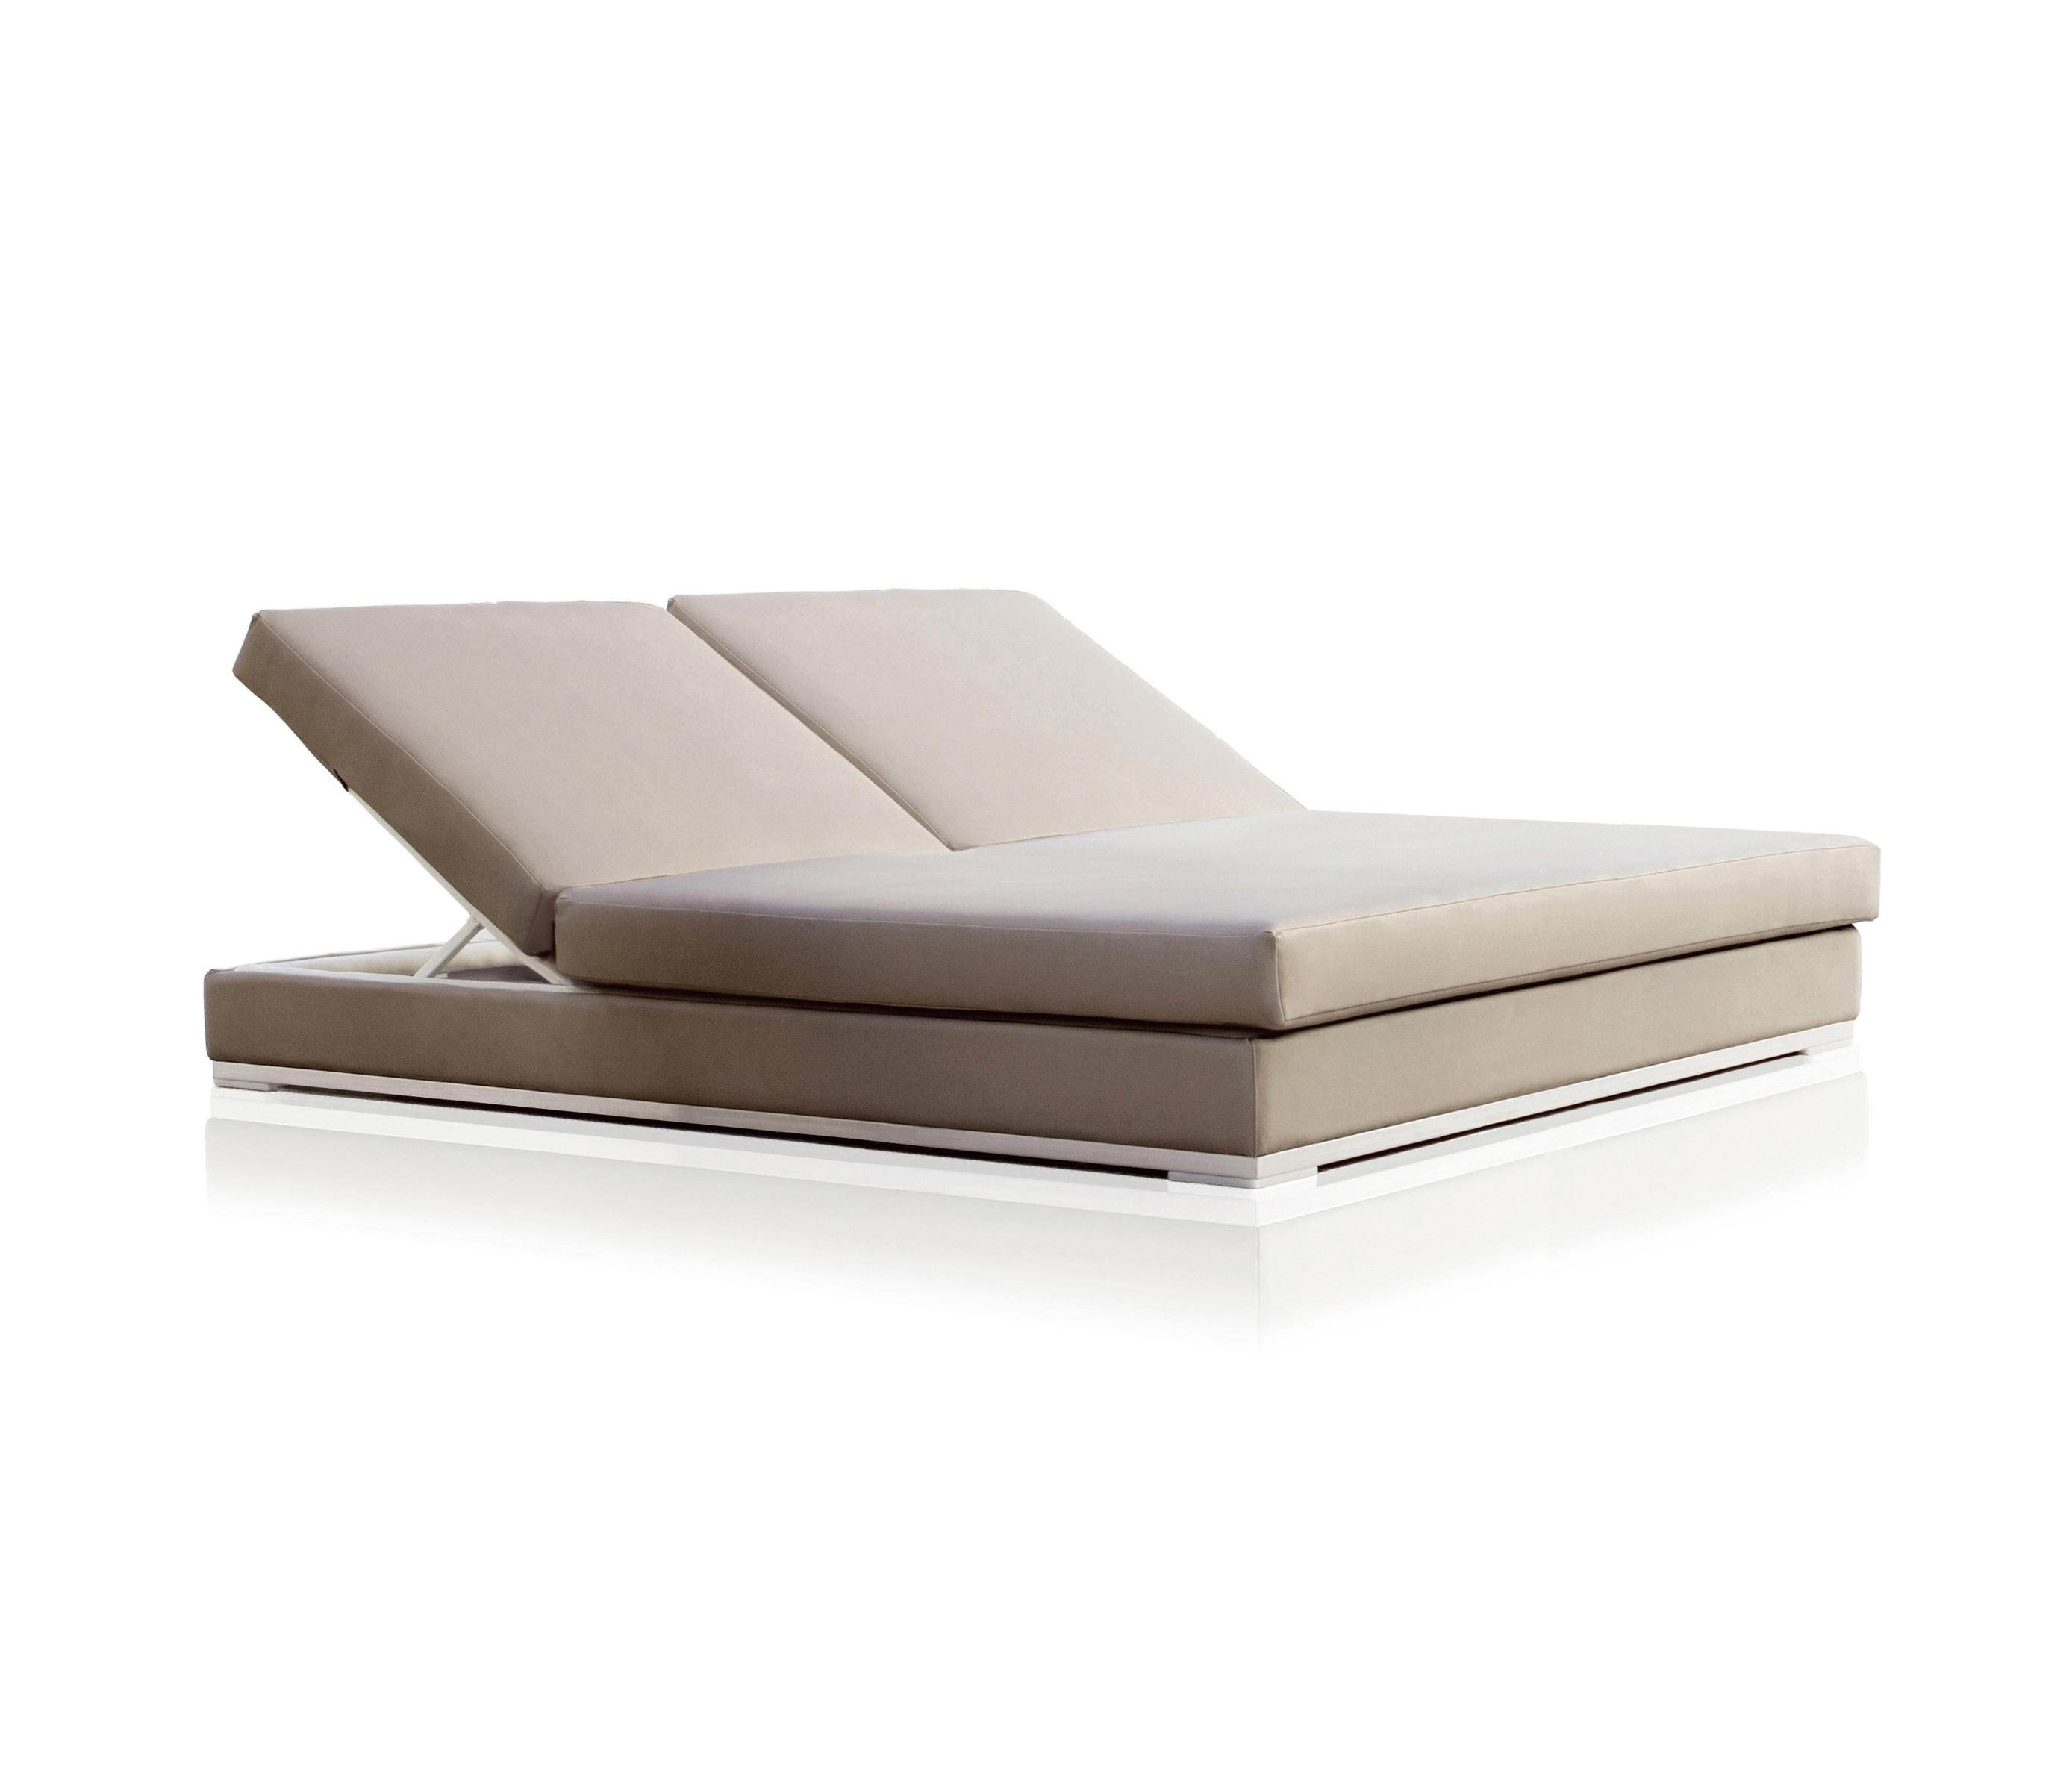 Slim double chaise longue sun loungers from expormim for Chaise longue double exterieur